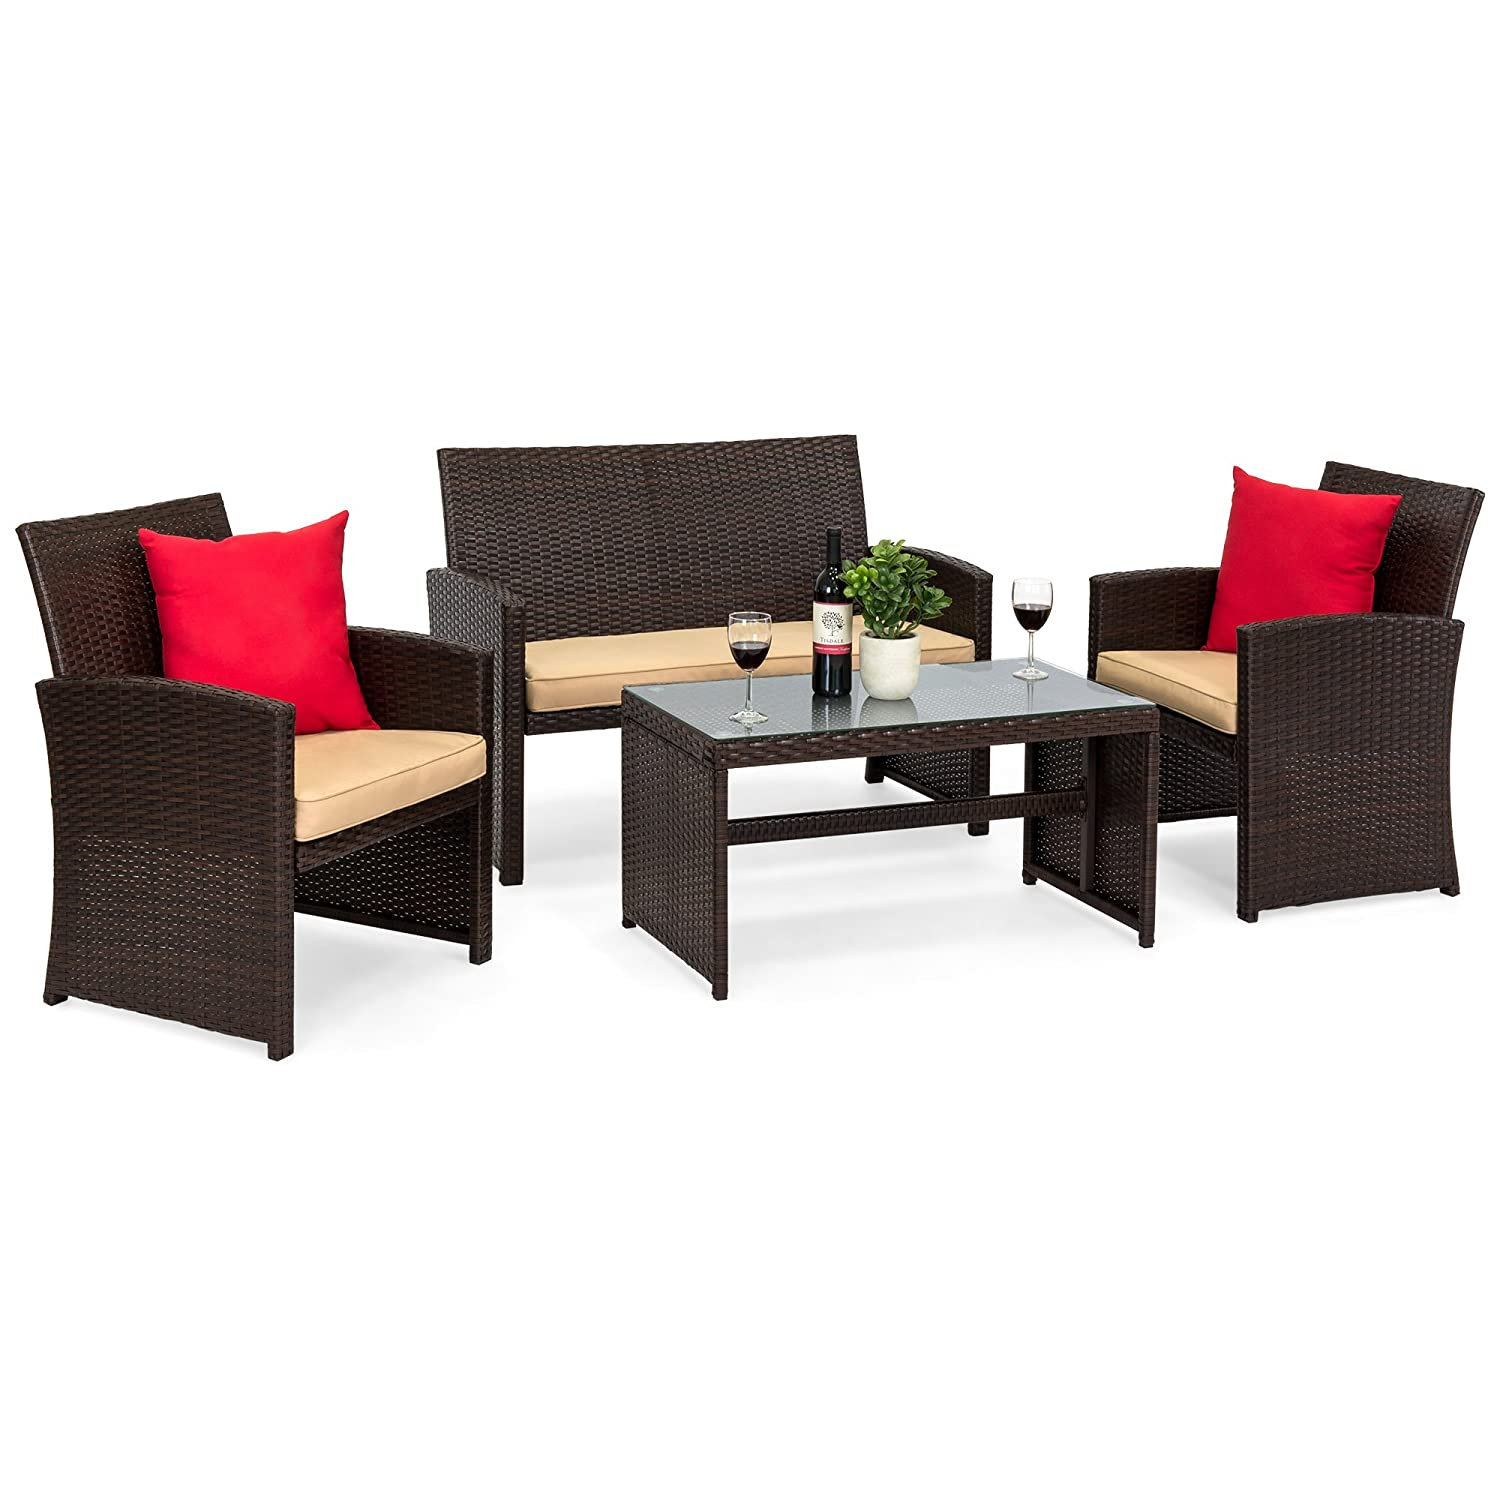 Best Choice Products 4pc Wicker Outdoor Patio Furniture Set